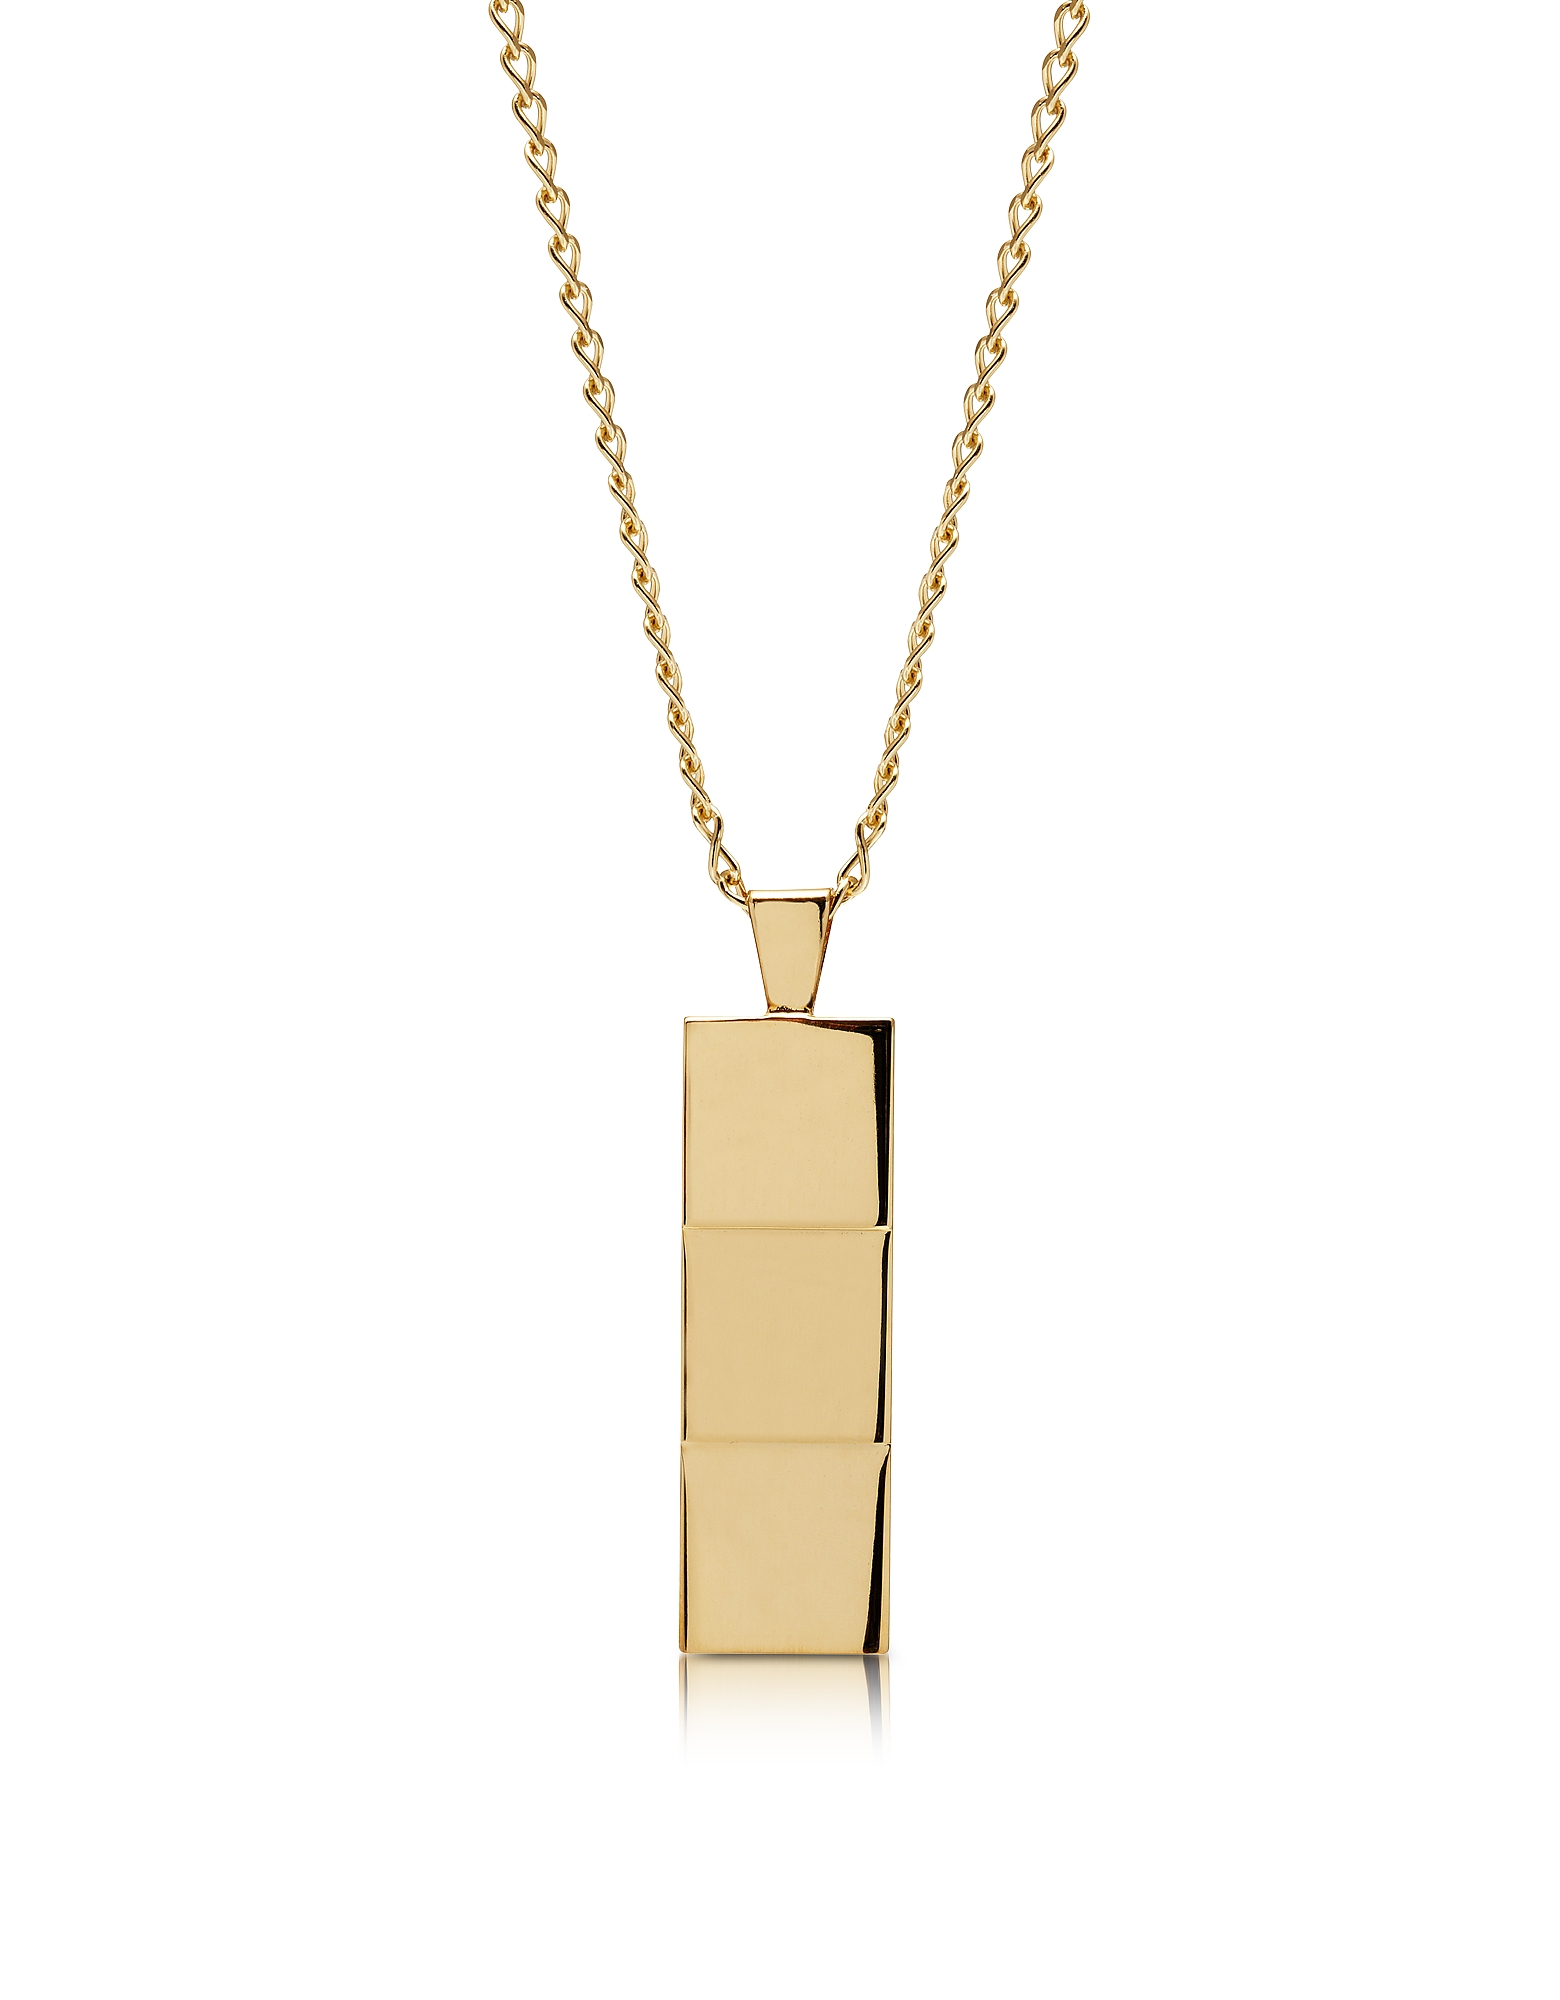 Northskull Designer Men's Necklaces, Layers Gold-tone Necklace